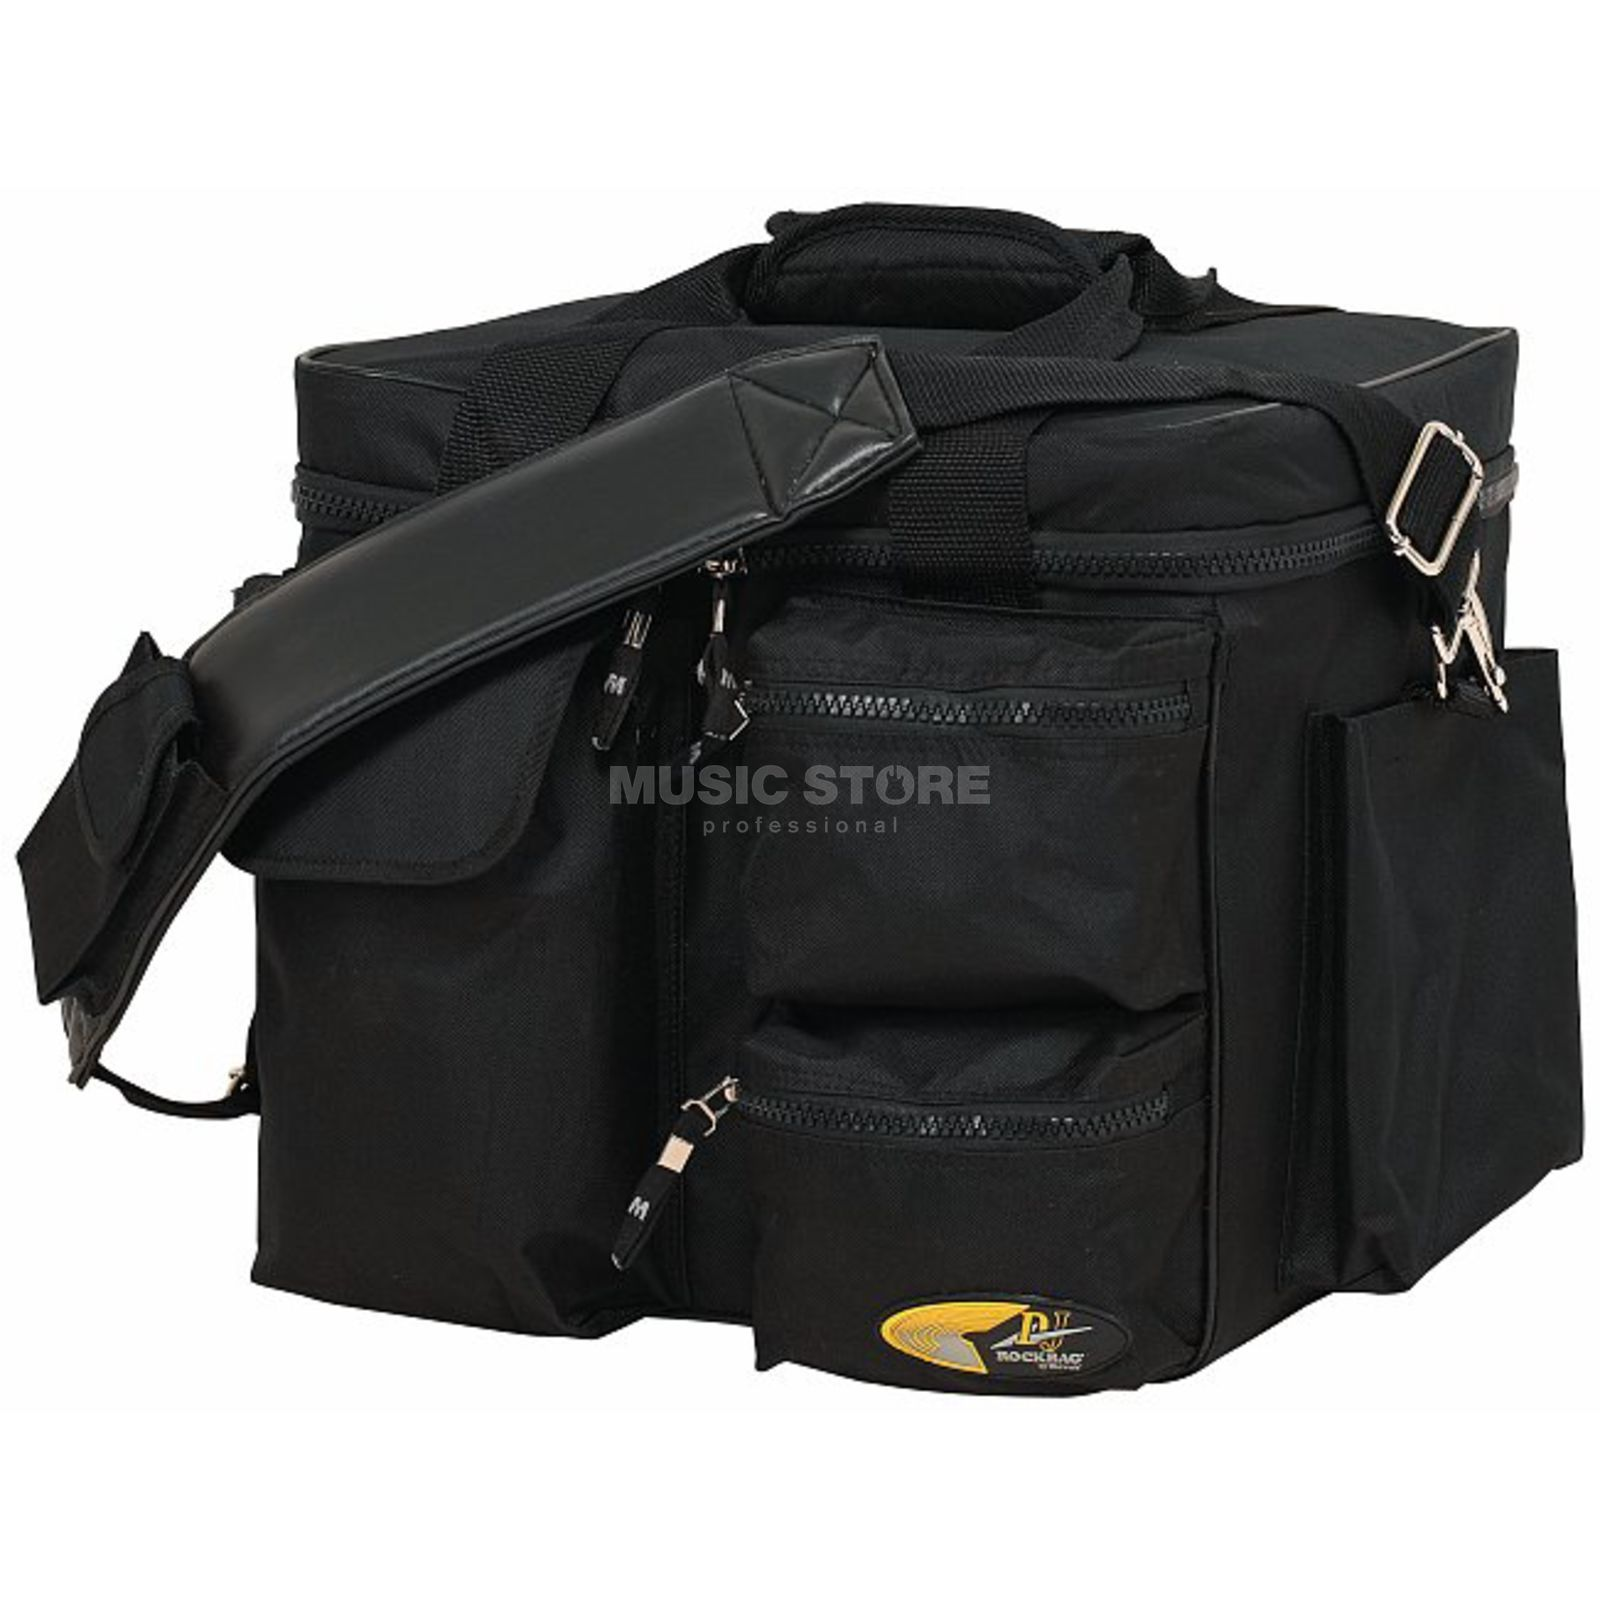 Rockbag DJ Nylon Record Bag RB 27150 B for 80 LPs, black Immagine prodotto